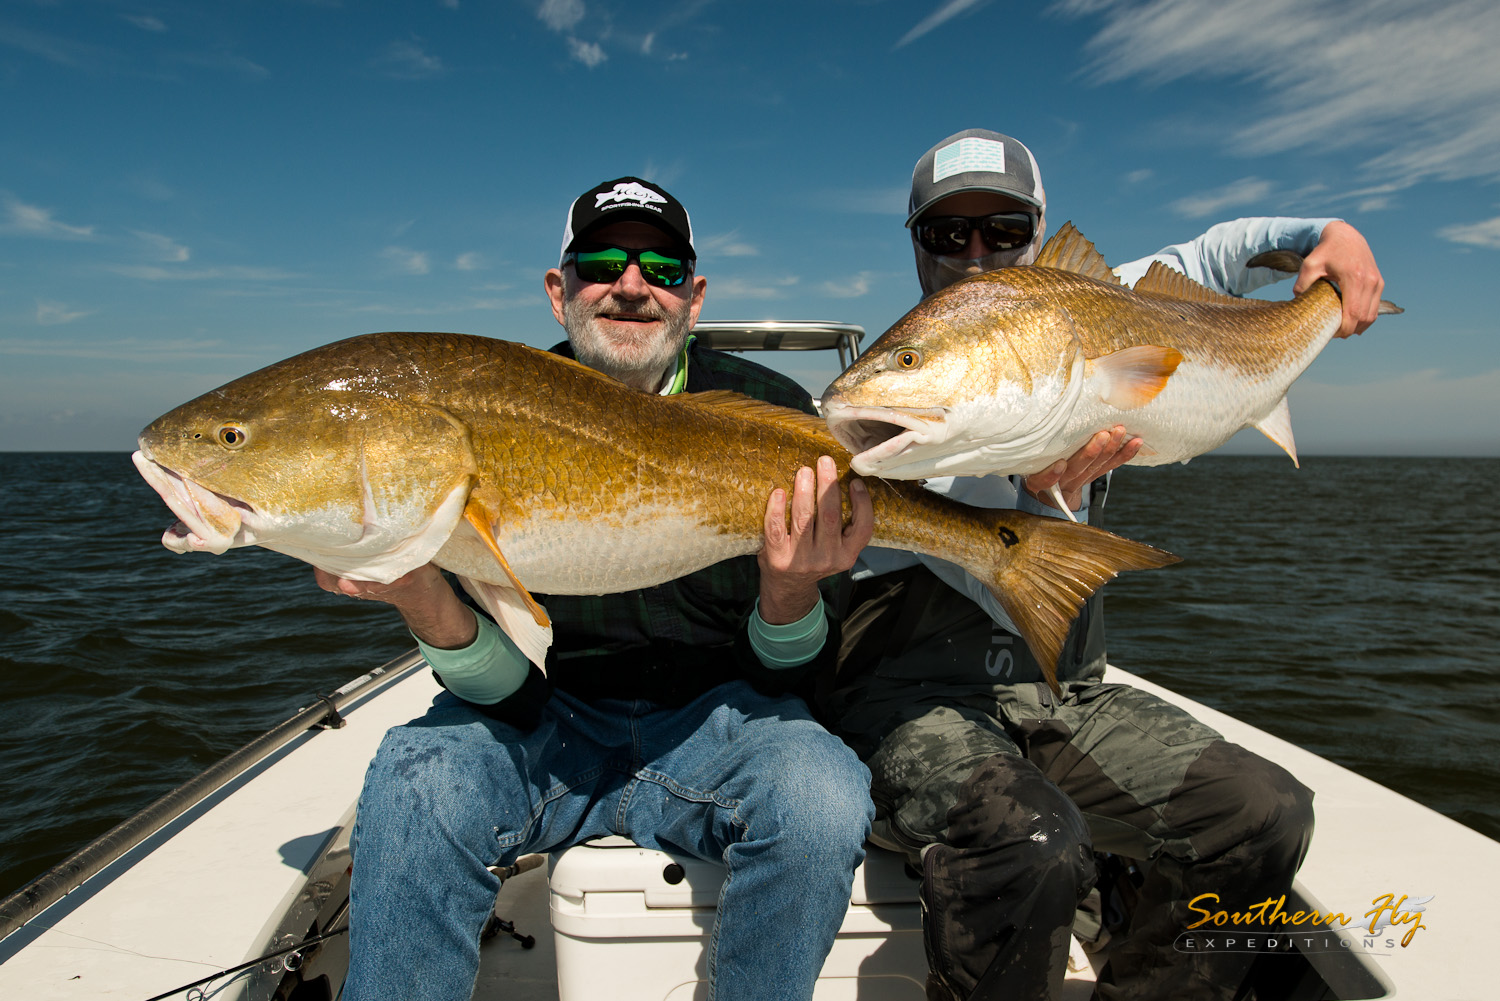 2019-02-07_SouthernFlyExpeditions_NewOrleans_StephenGrover-3.jpg